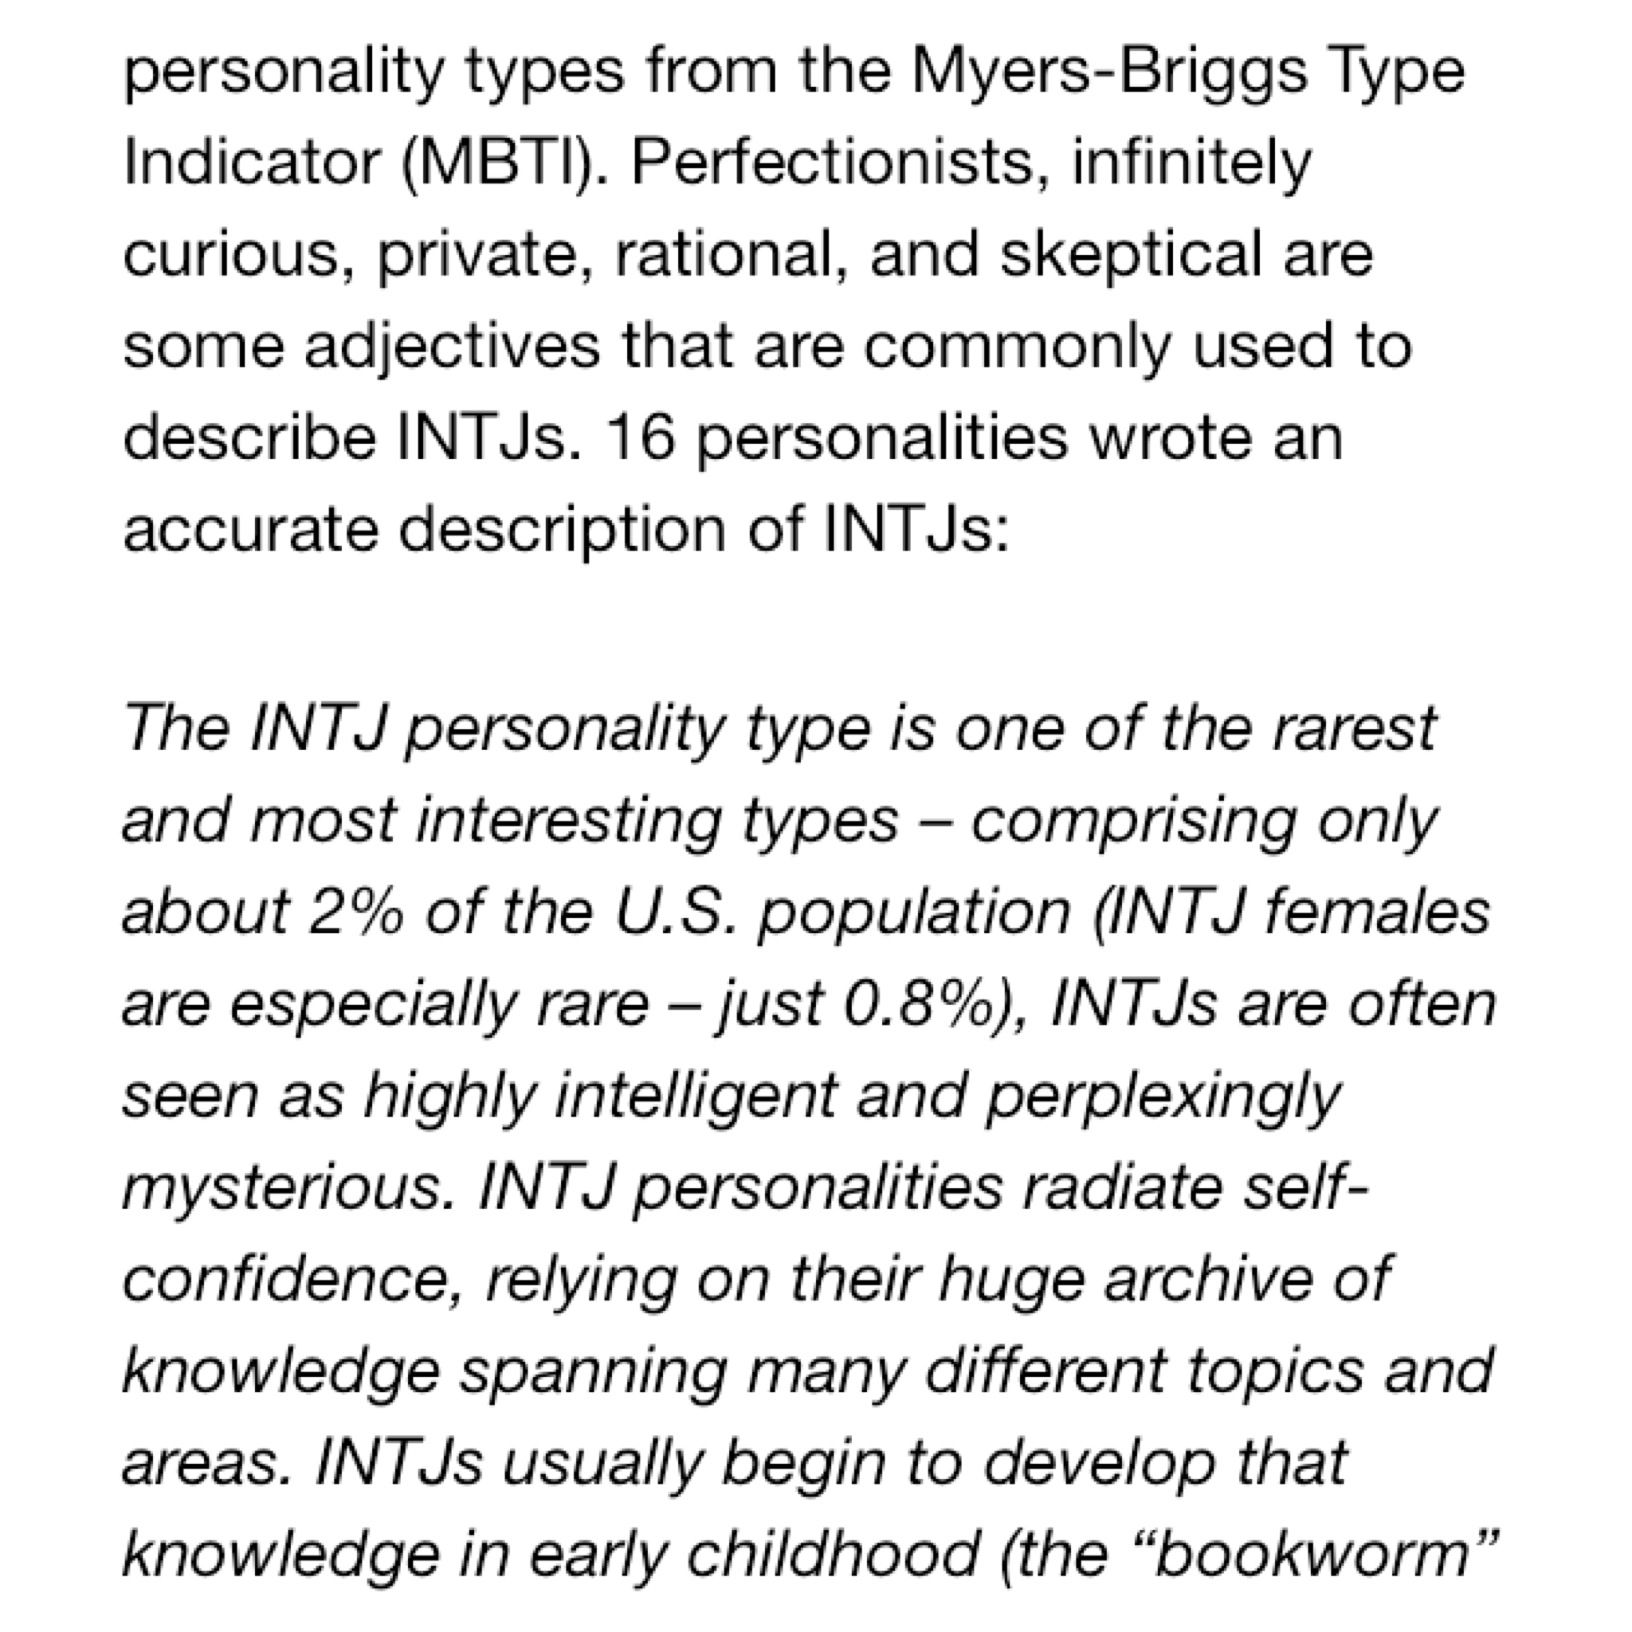 0 8% INTJ female  Not often seen in the wild  Not sure what I think